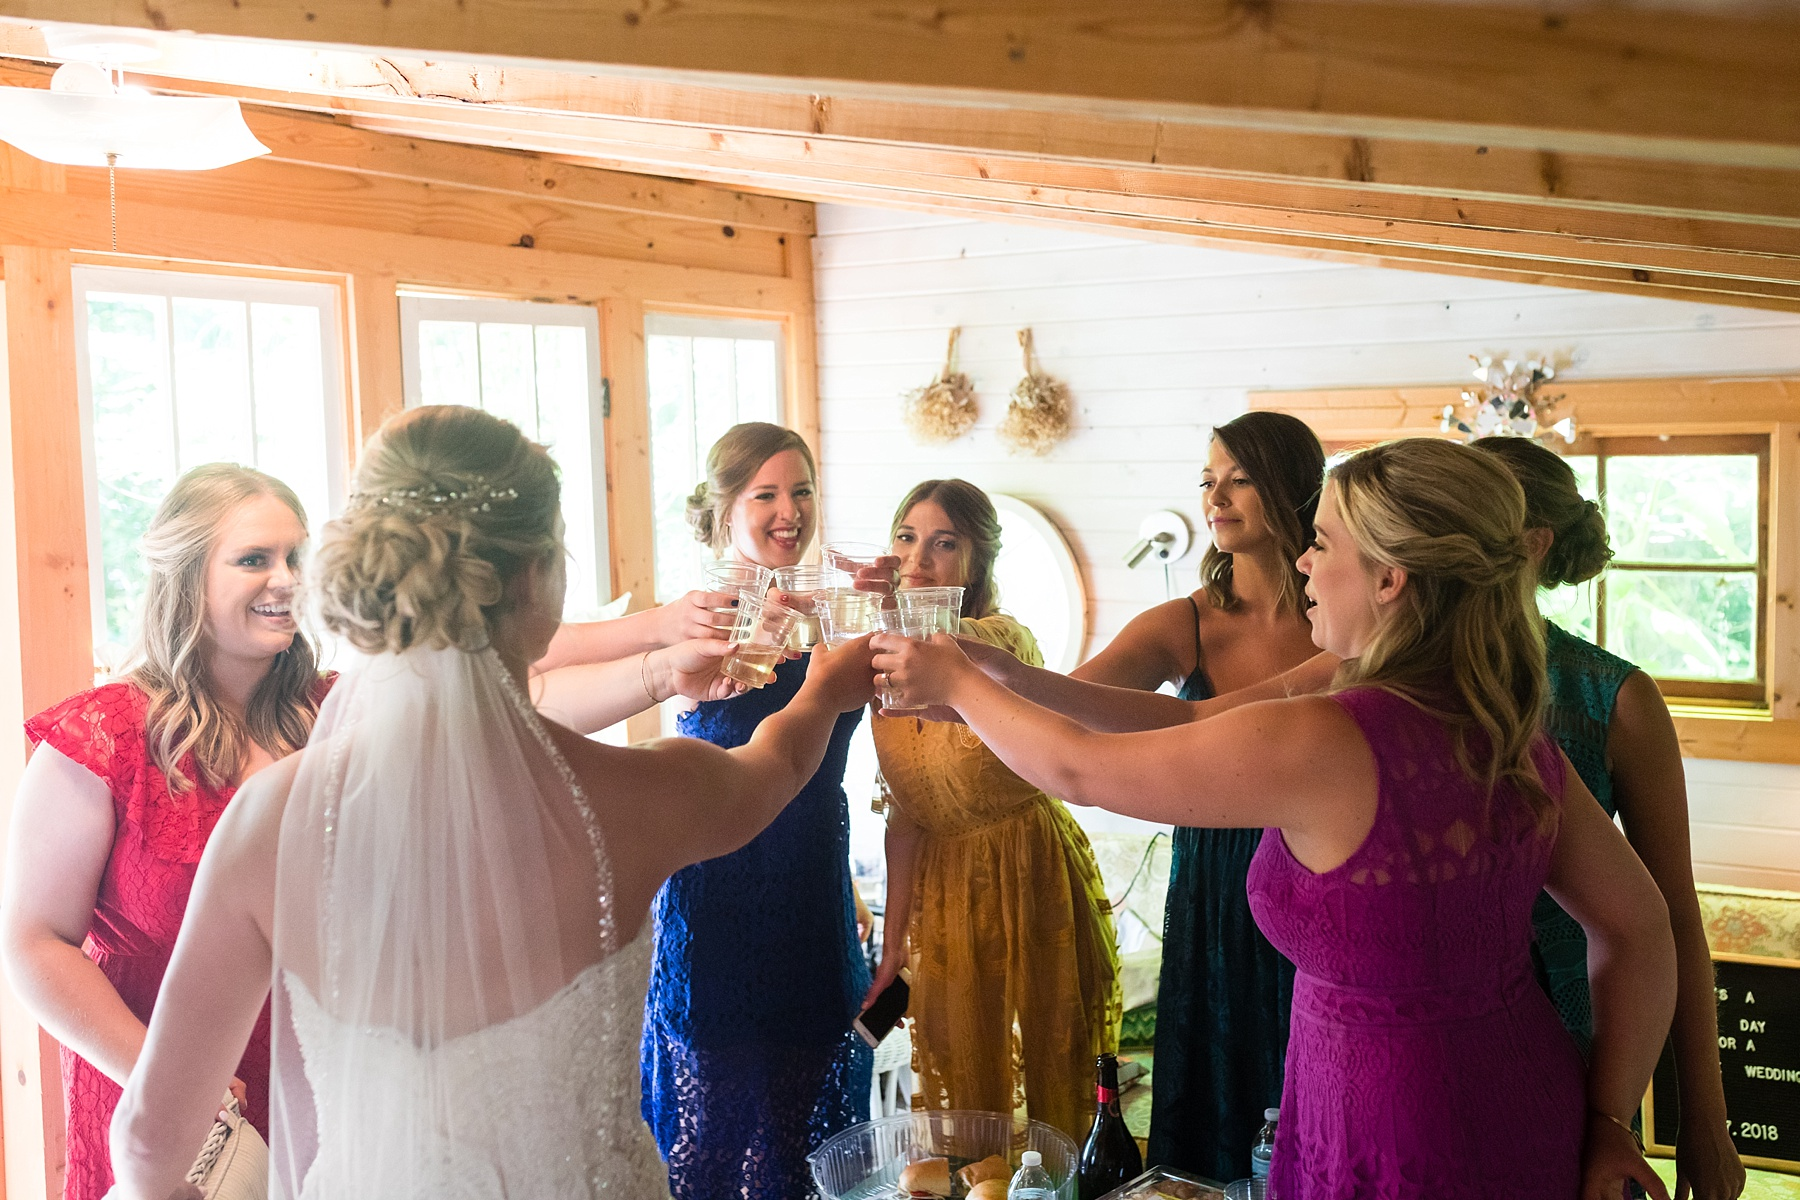 Brandon_Shafer_Photography_Millcreek_Wilde_Barn_Wedding_0018.jpg